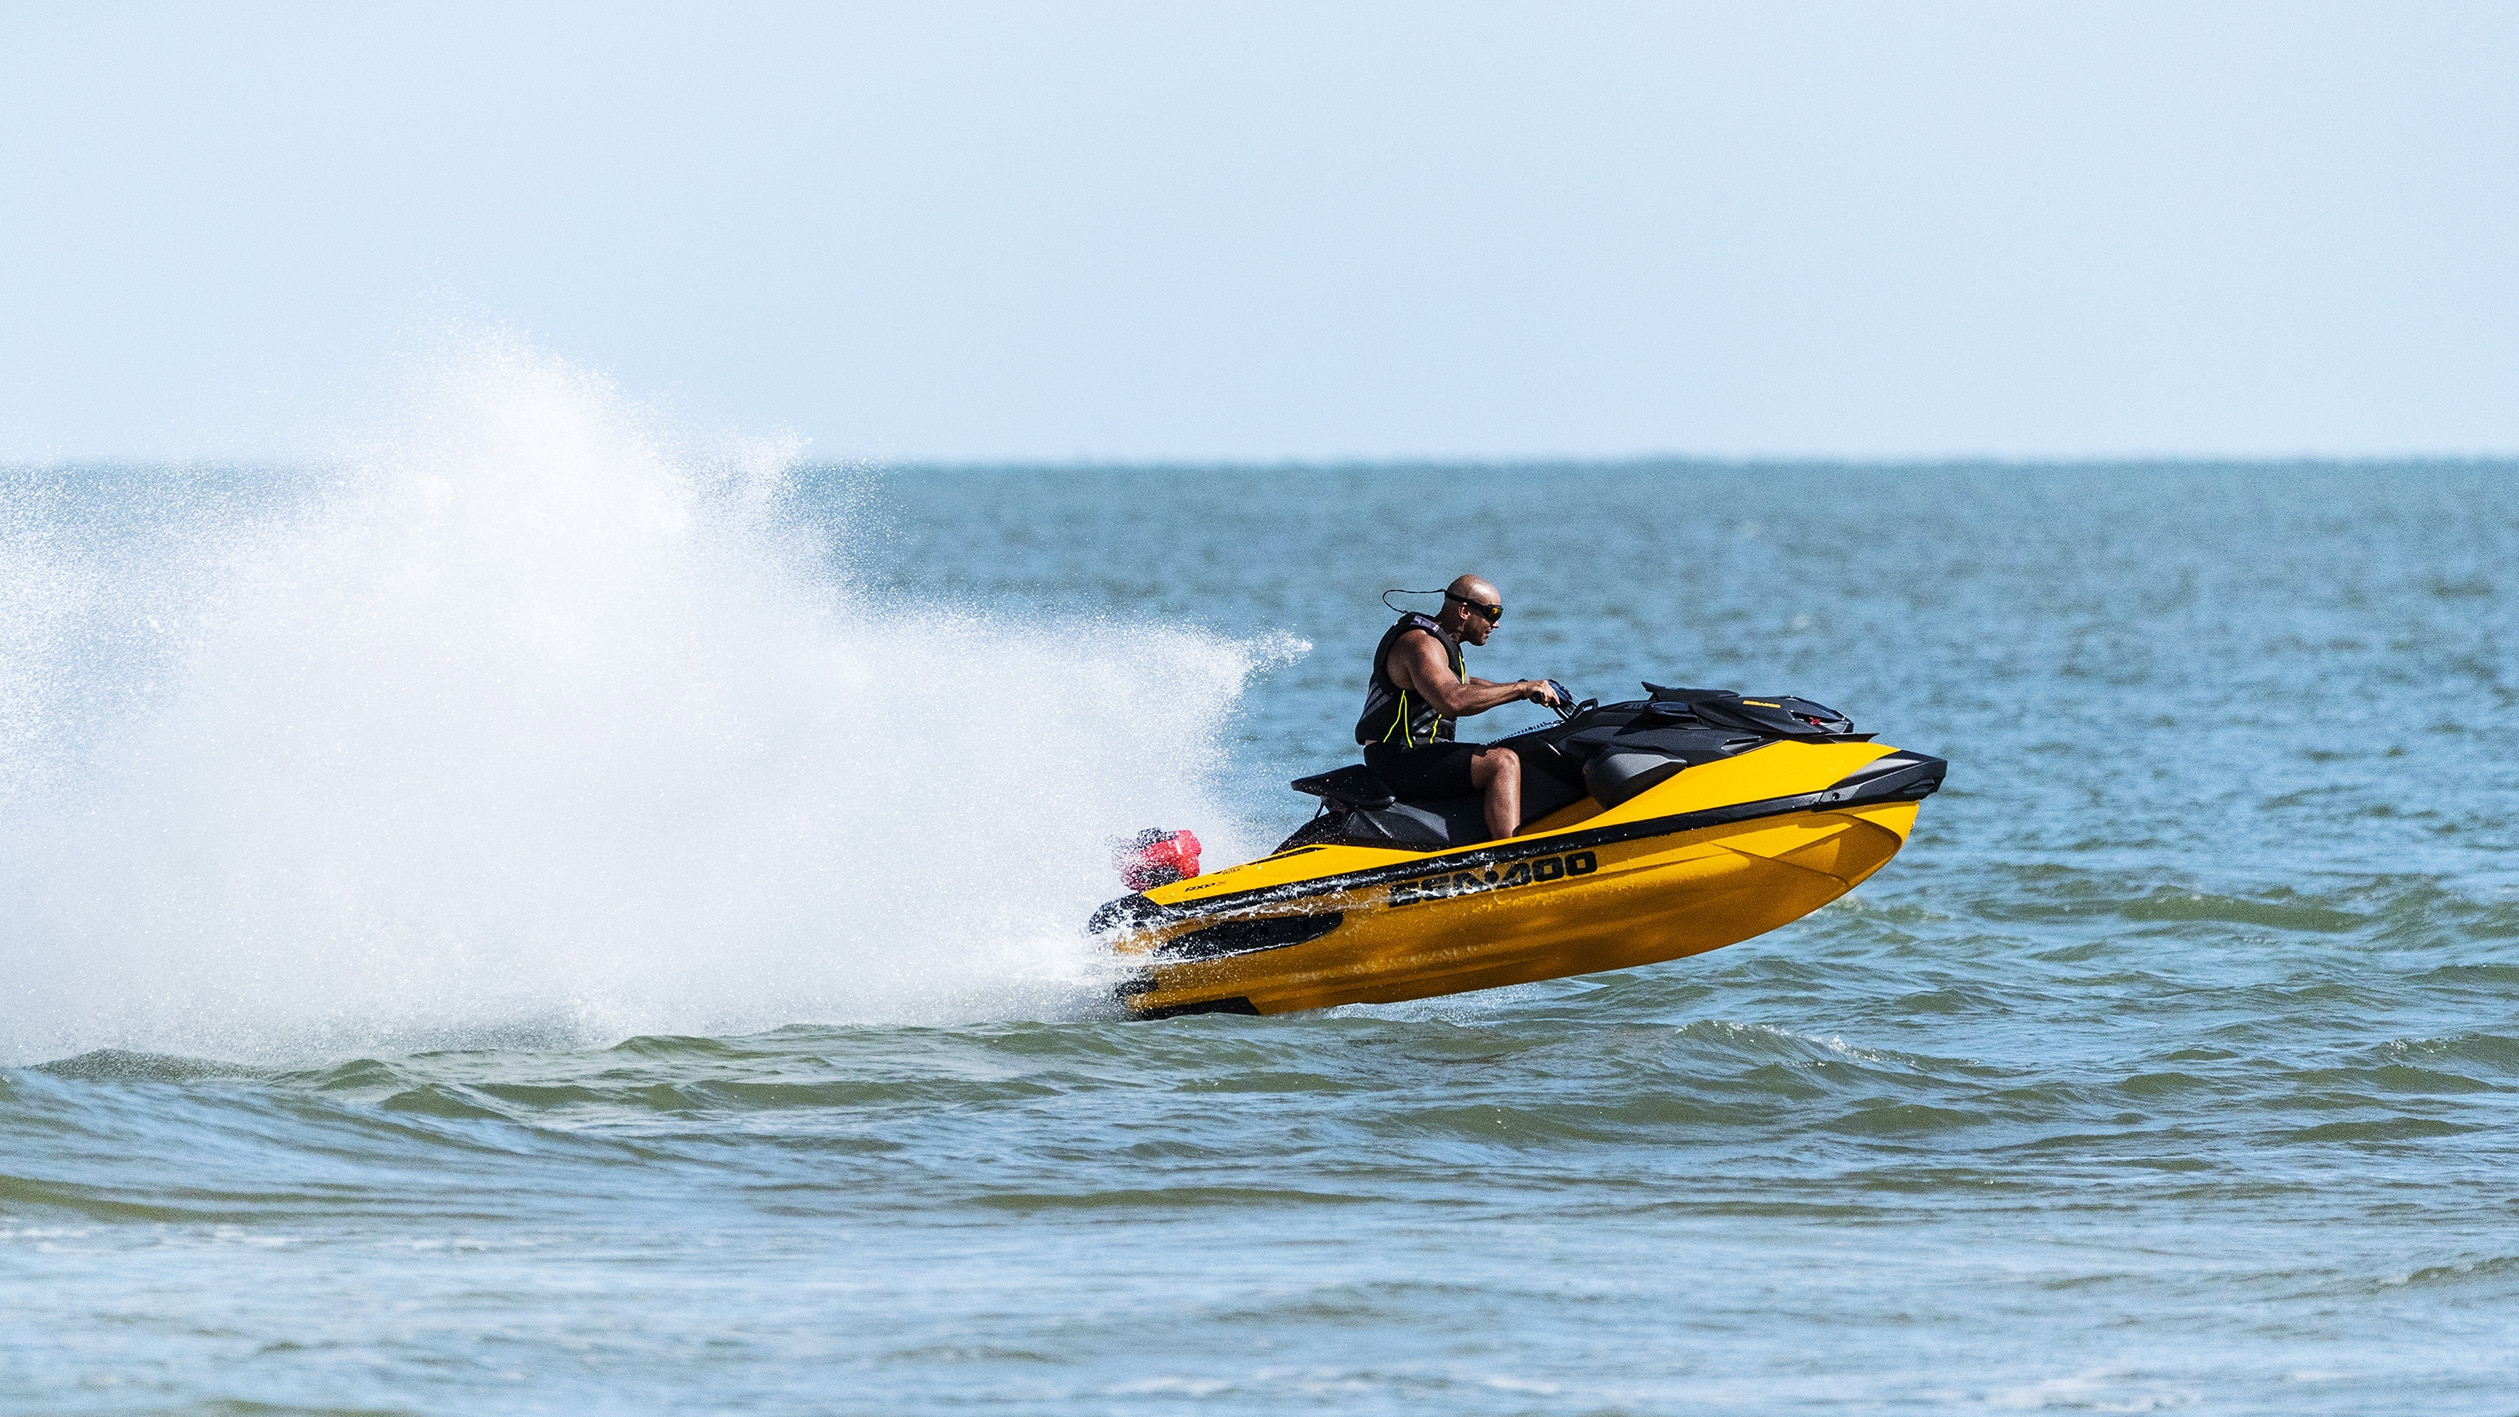 Man speeding a Sea-Doo RXP-X with a Rotax 1630 engine